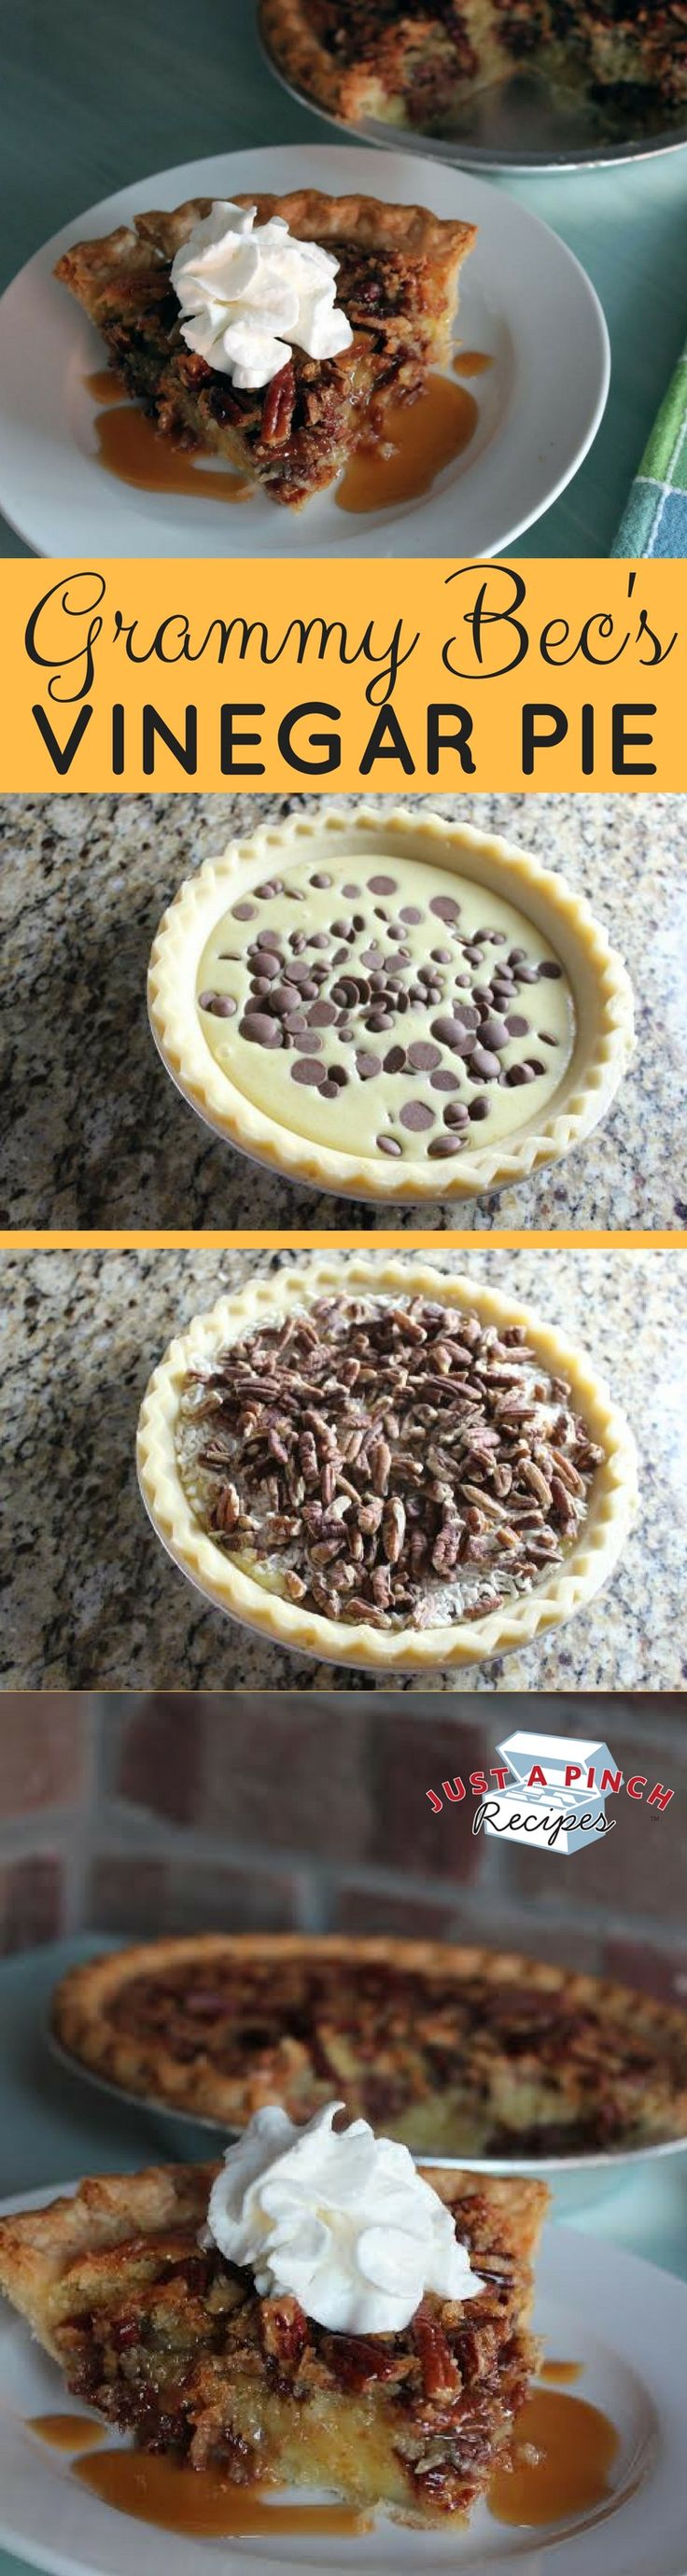 We tested the German Chocolate Vinegar Pie and, oh my, it was good. The base pie is rich and creamy. It only gets better when you add the chocolate, coconut, and pecans. They sent this pie over the top!